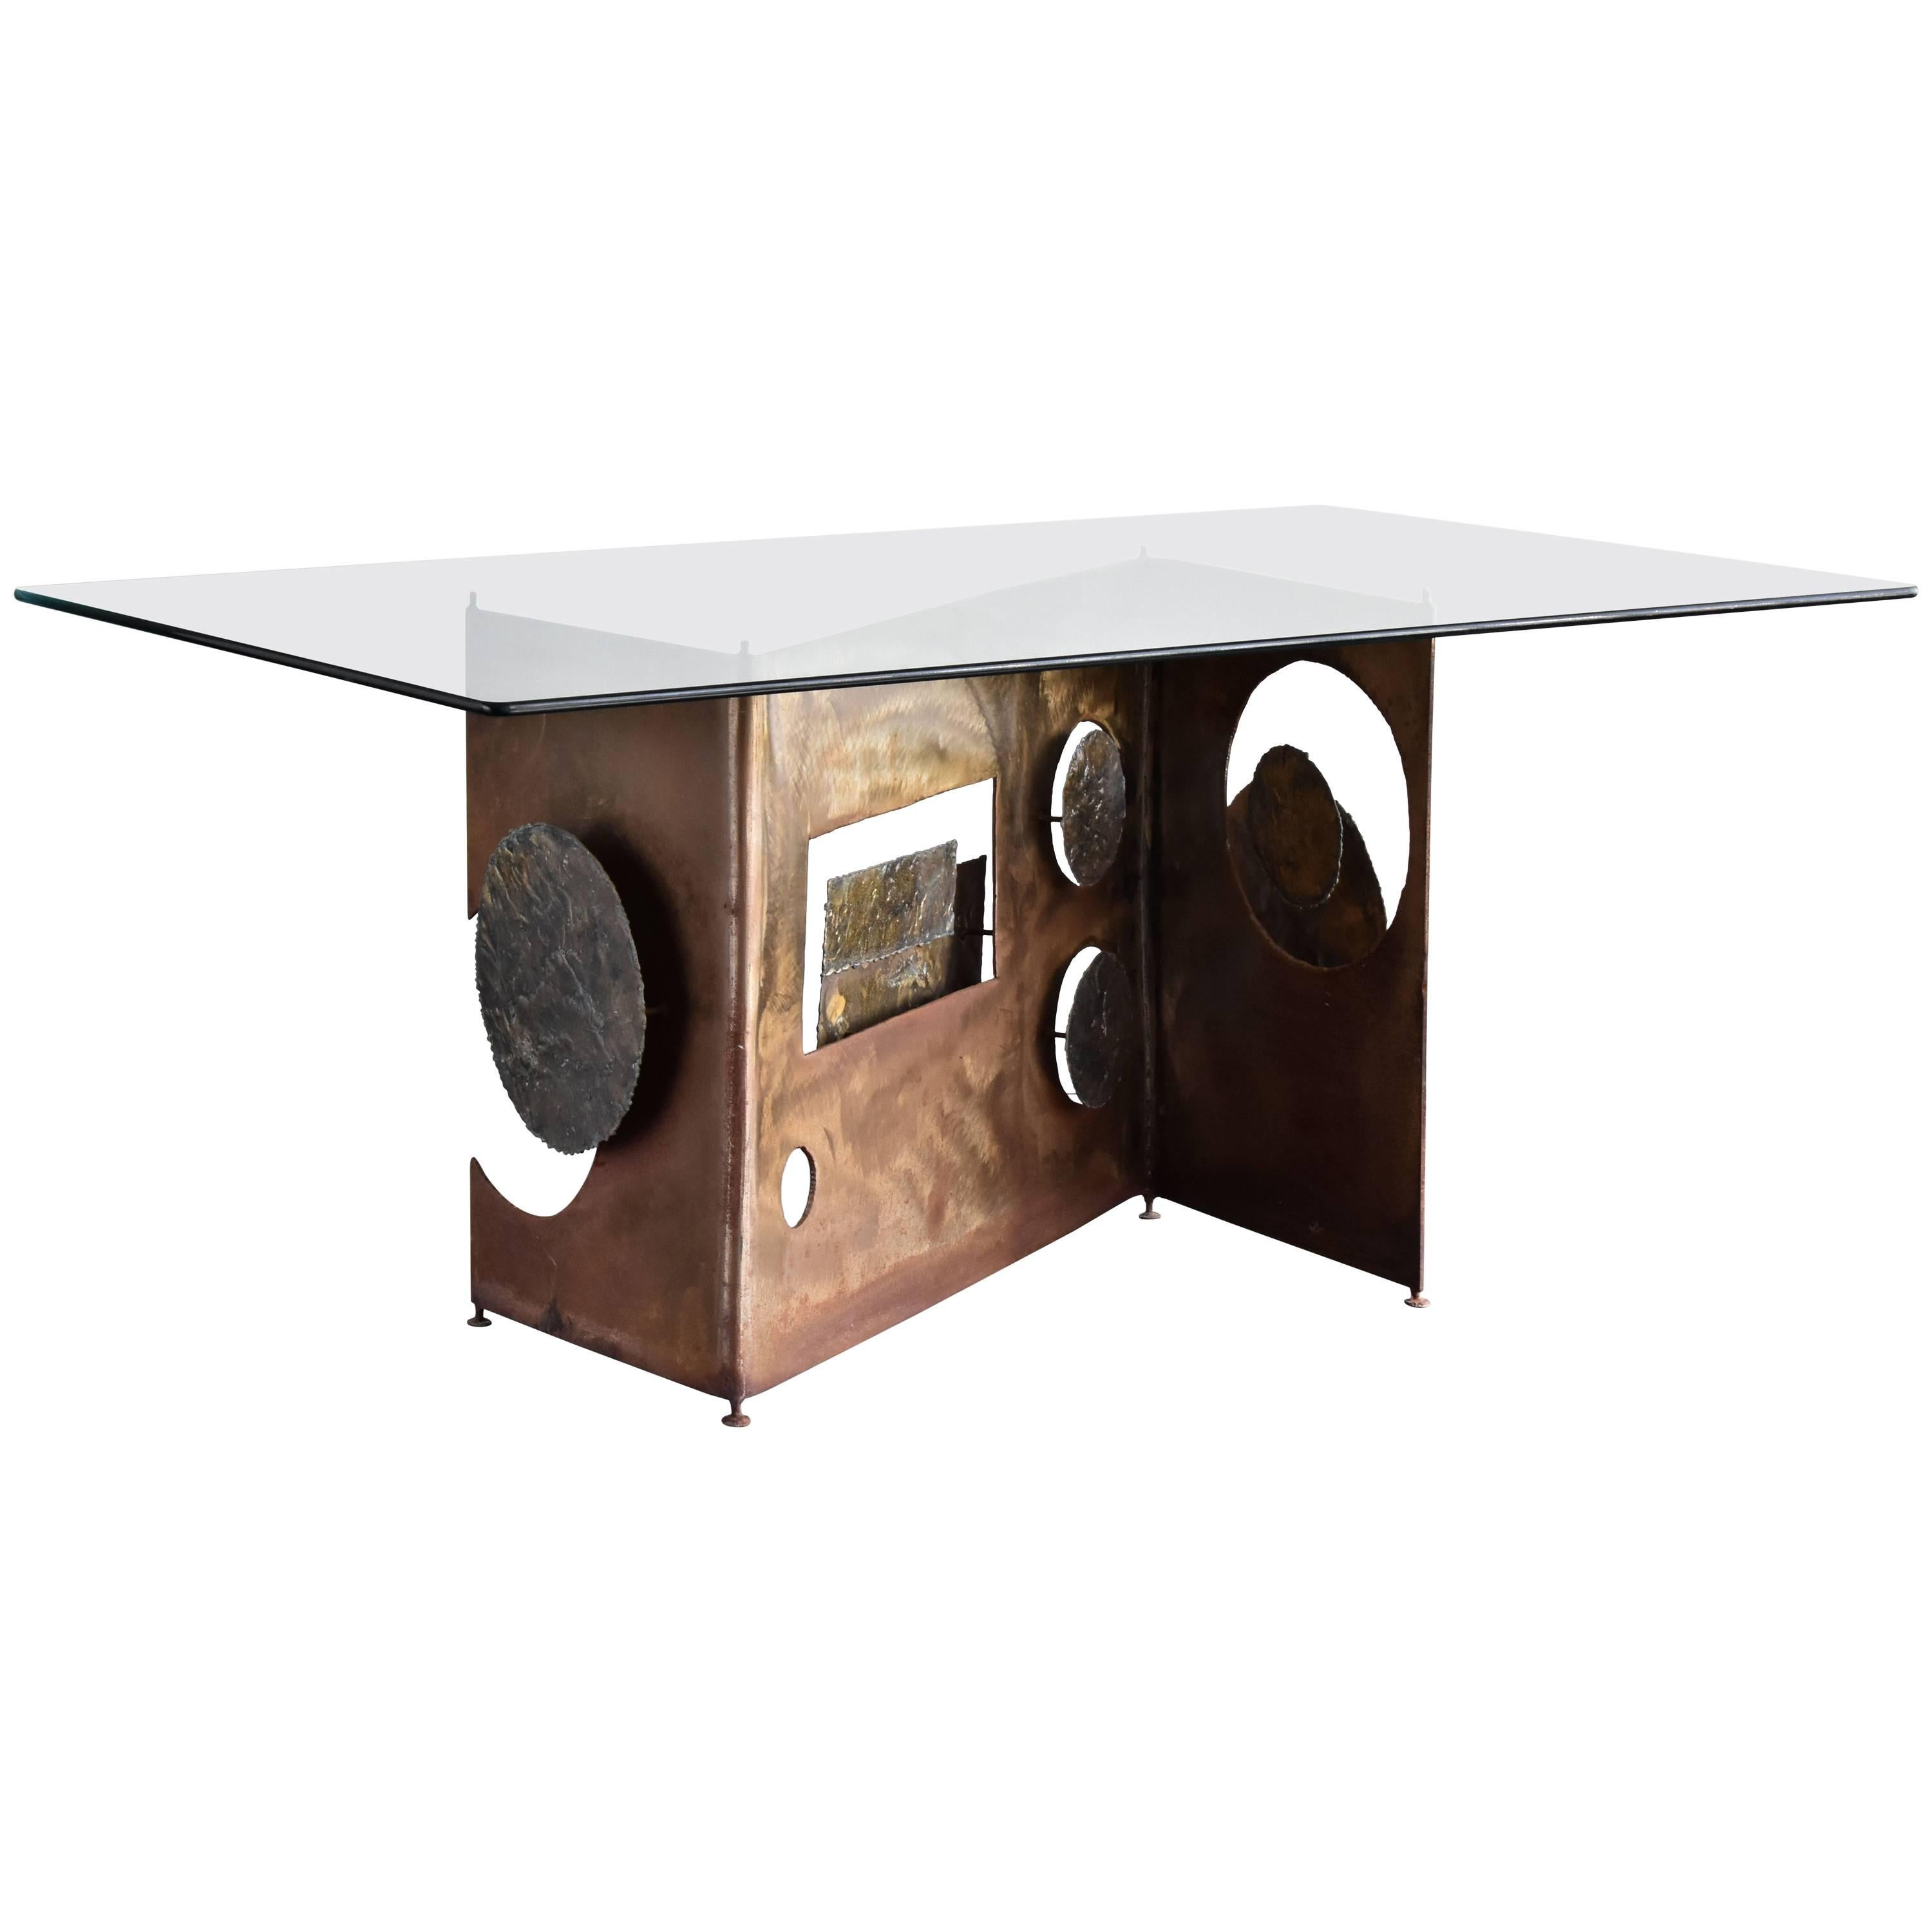 Silas Seandel, Signed Handcrafted Brutalist Console/Table Bronze, Steel 1970s